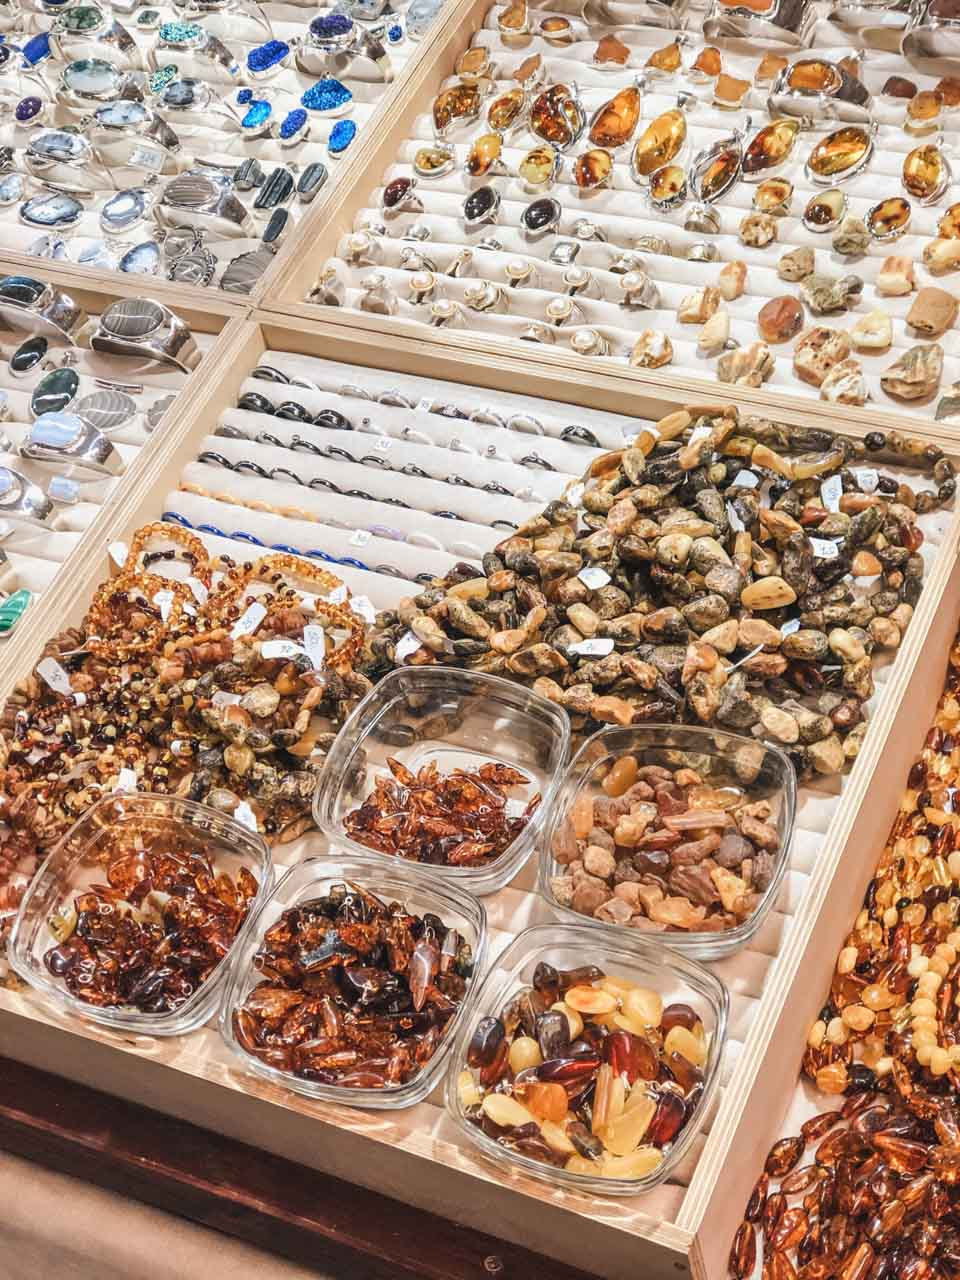 Amber jewellery at the Arts and Crafts Market in Gdańsk